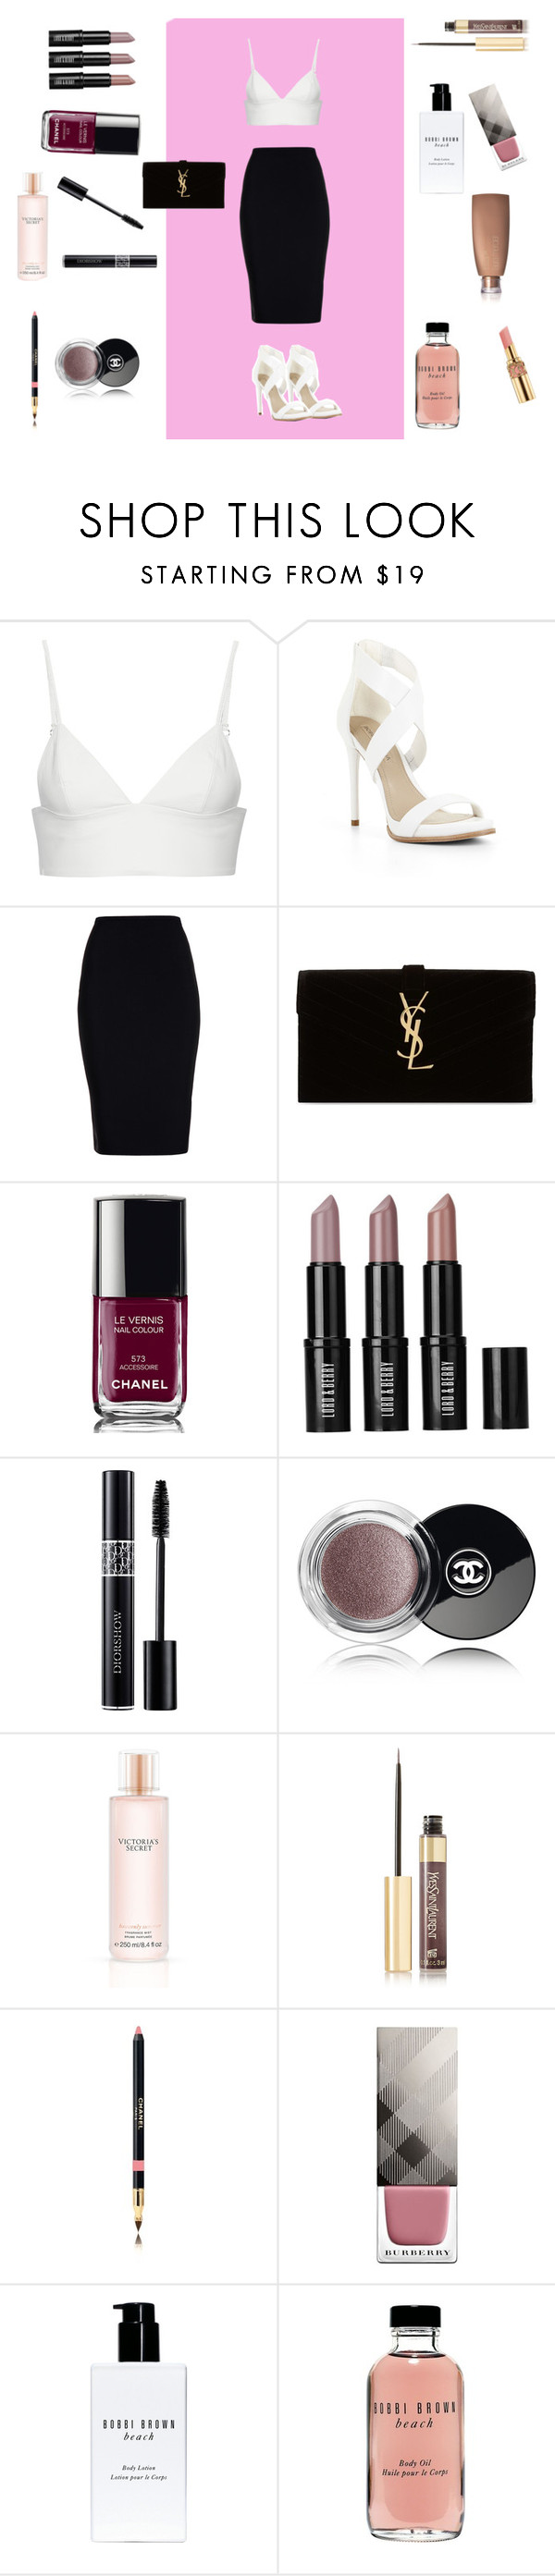 """""""(•_•)"""" by jasminehopex ❤ liked on Polyvore featuring T By Alexander Wang, BCBGMAXAZRIA, Roland Mouret, Yves Saint Laurent, Chanel, Lord & Berry, Christian Dior, Victoria's Secret, Burberry and Bobbi Brown Cosmetics"""